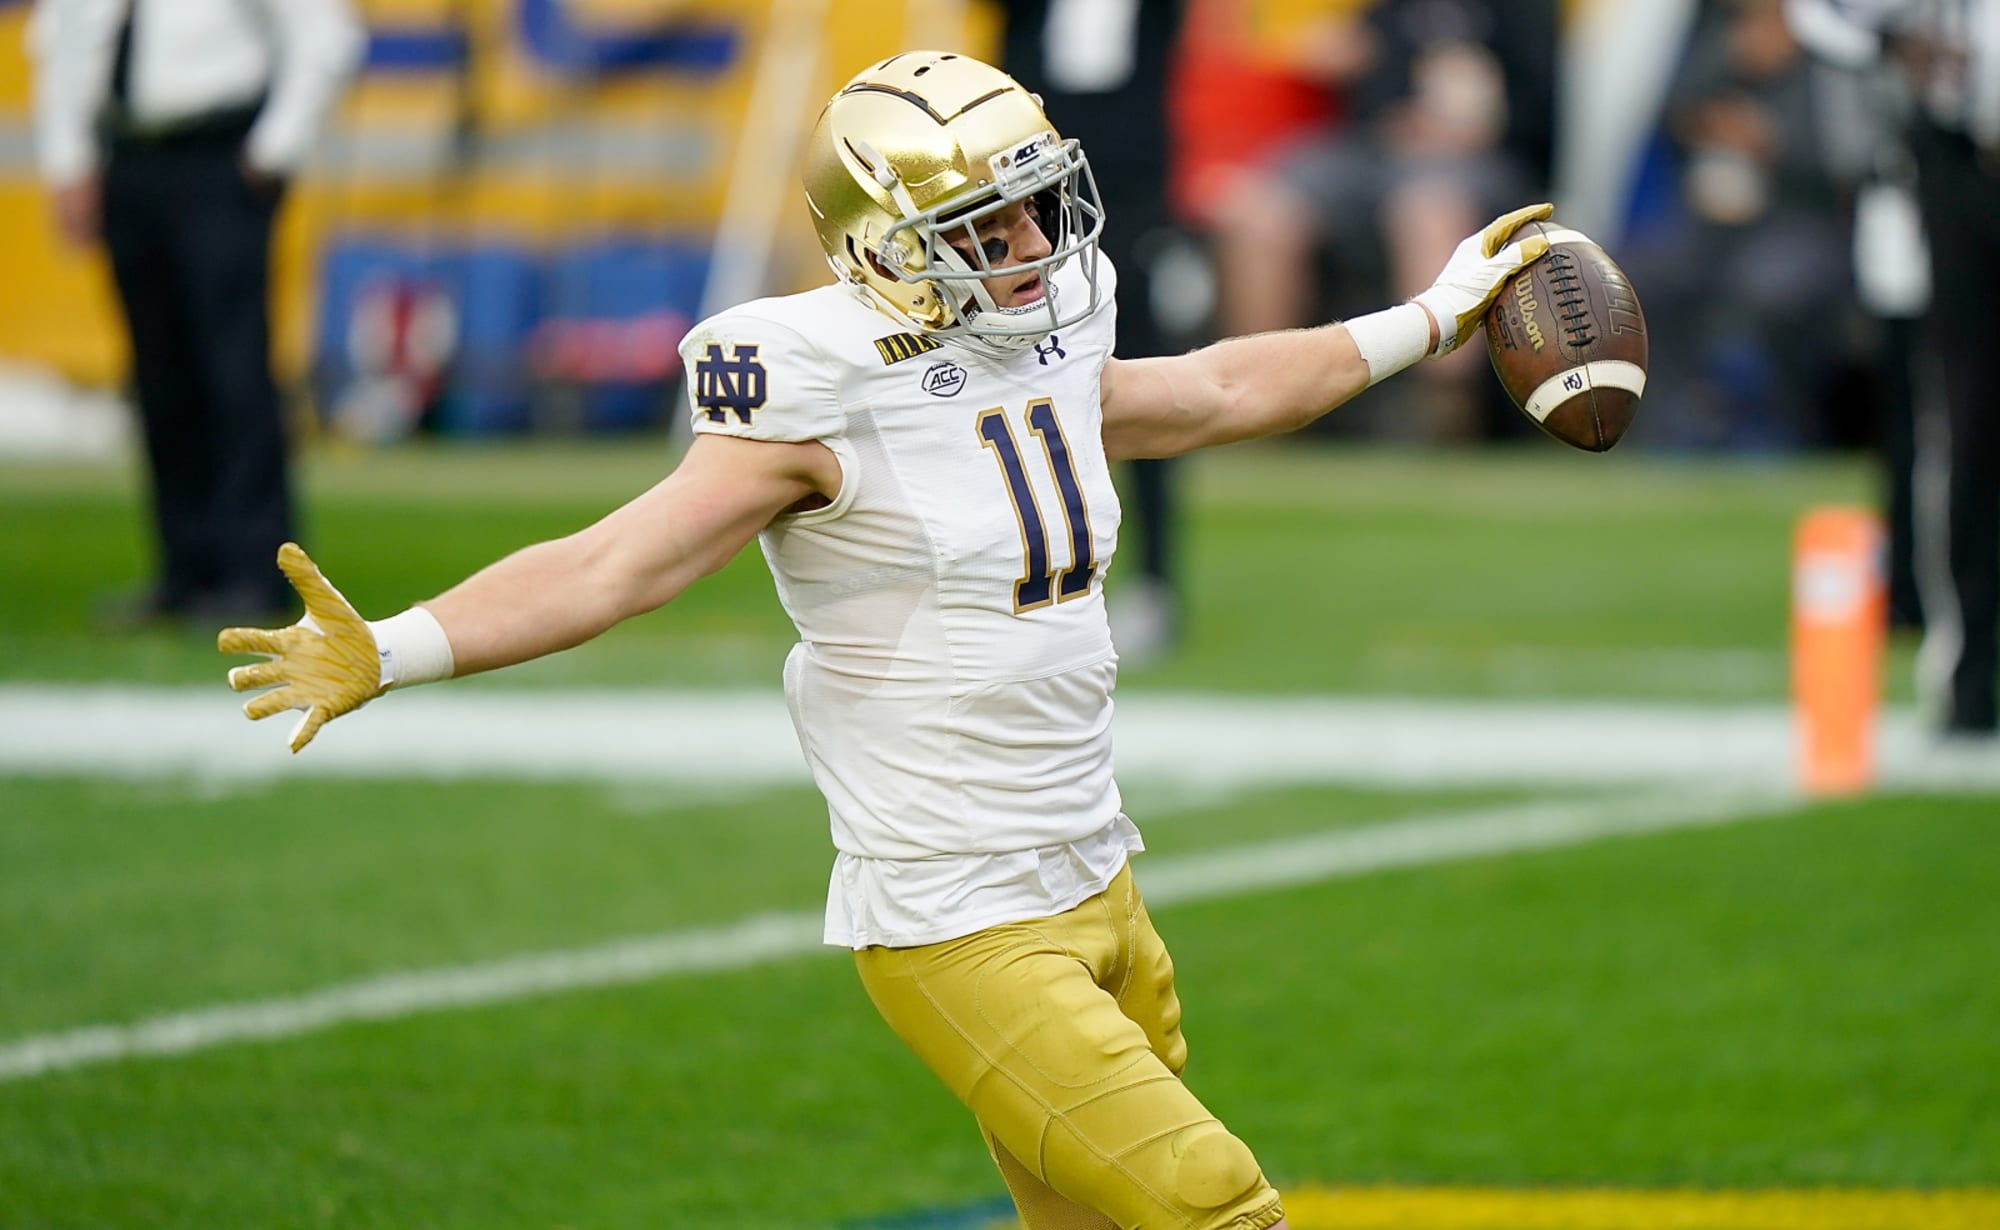 Notre Dame Football: Play that changed everything against Pittsburgh